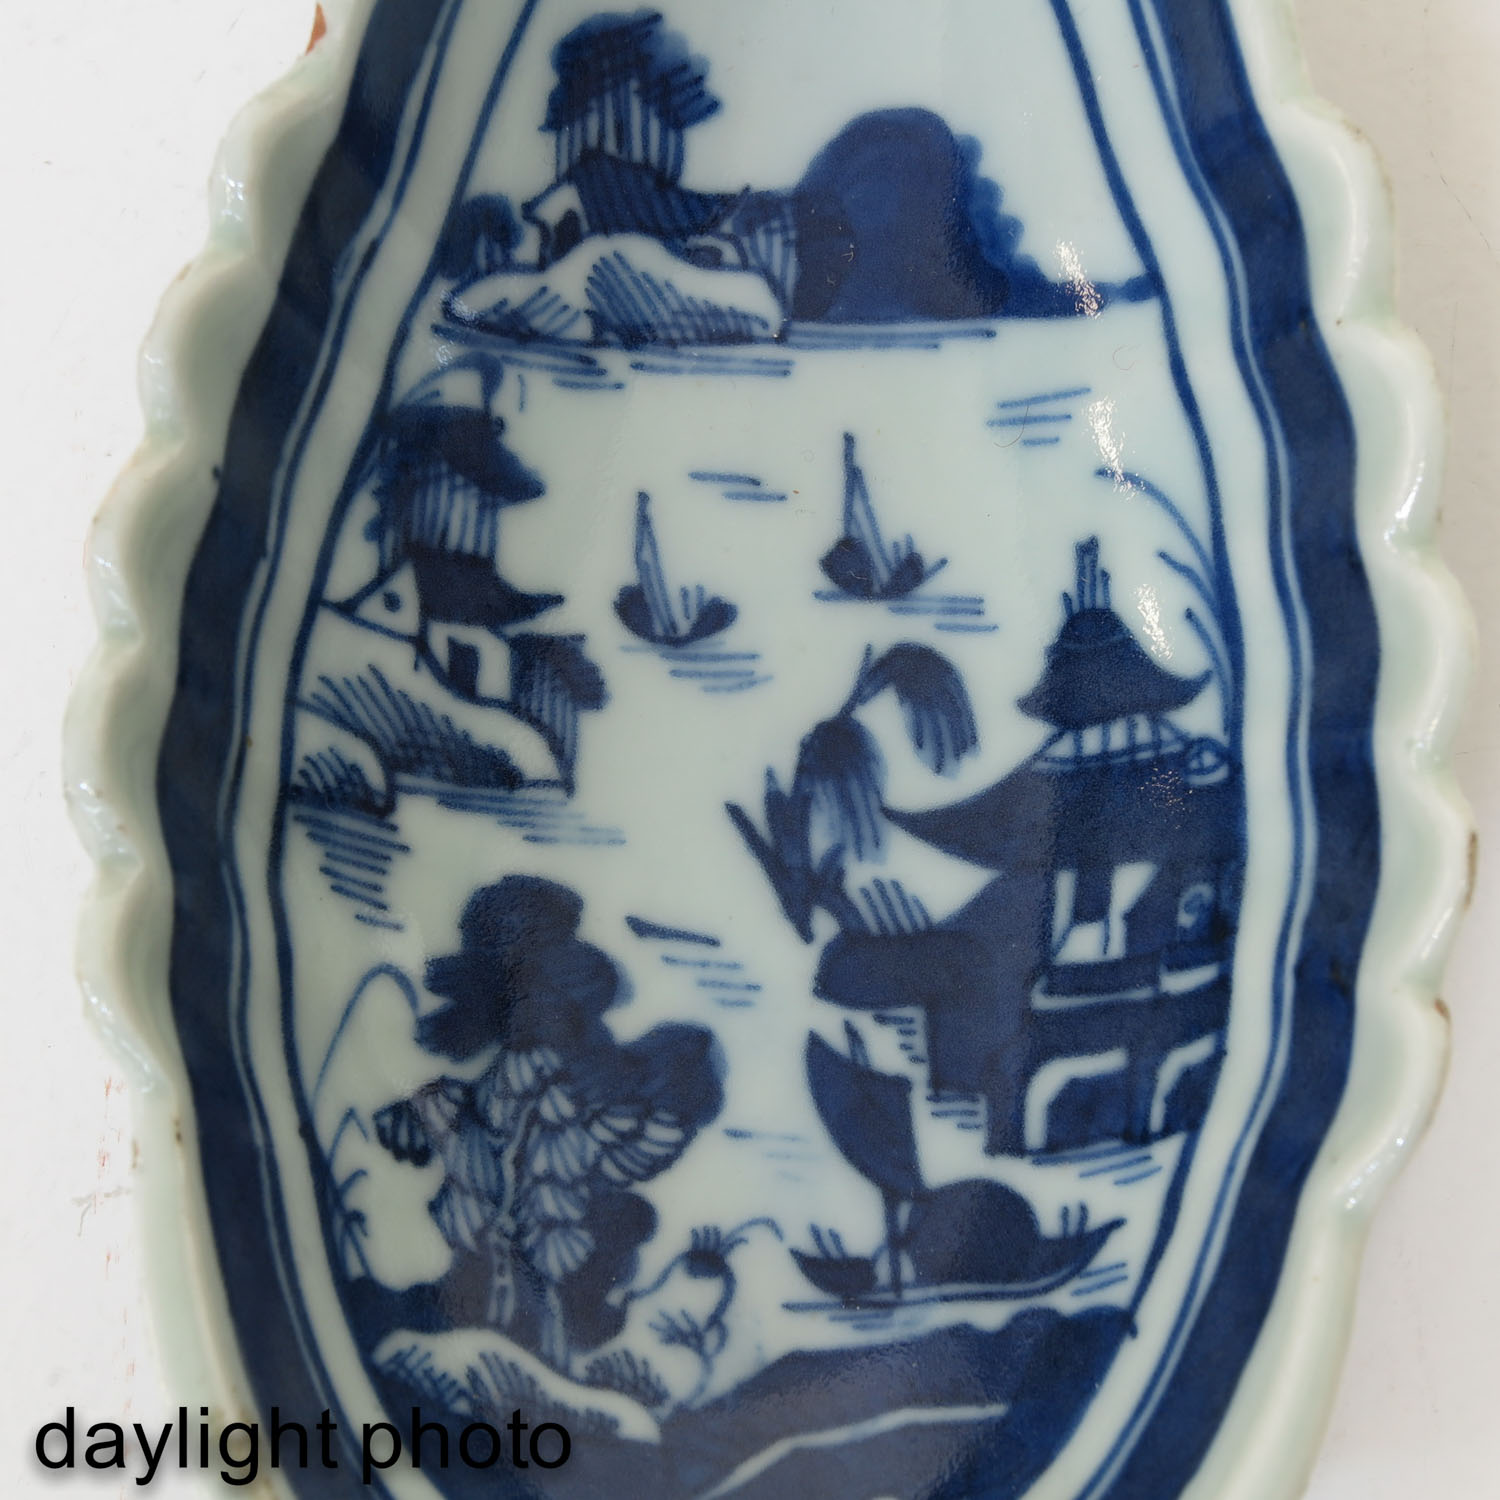 A Collection of Porcelain - Image 10 of 10